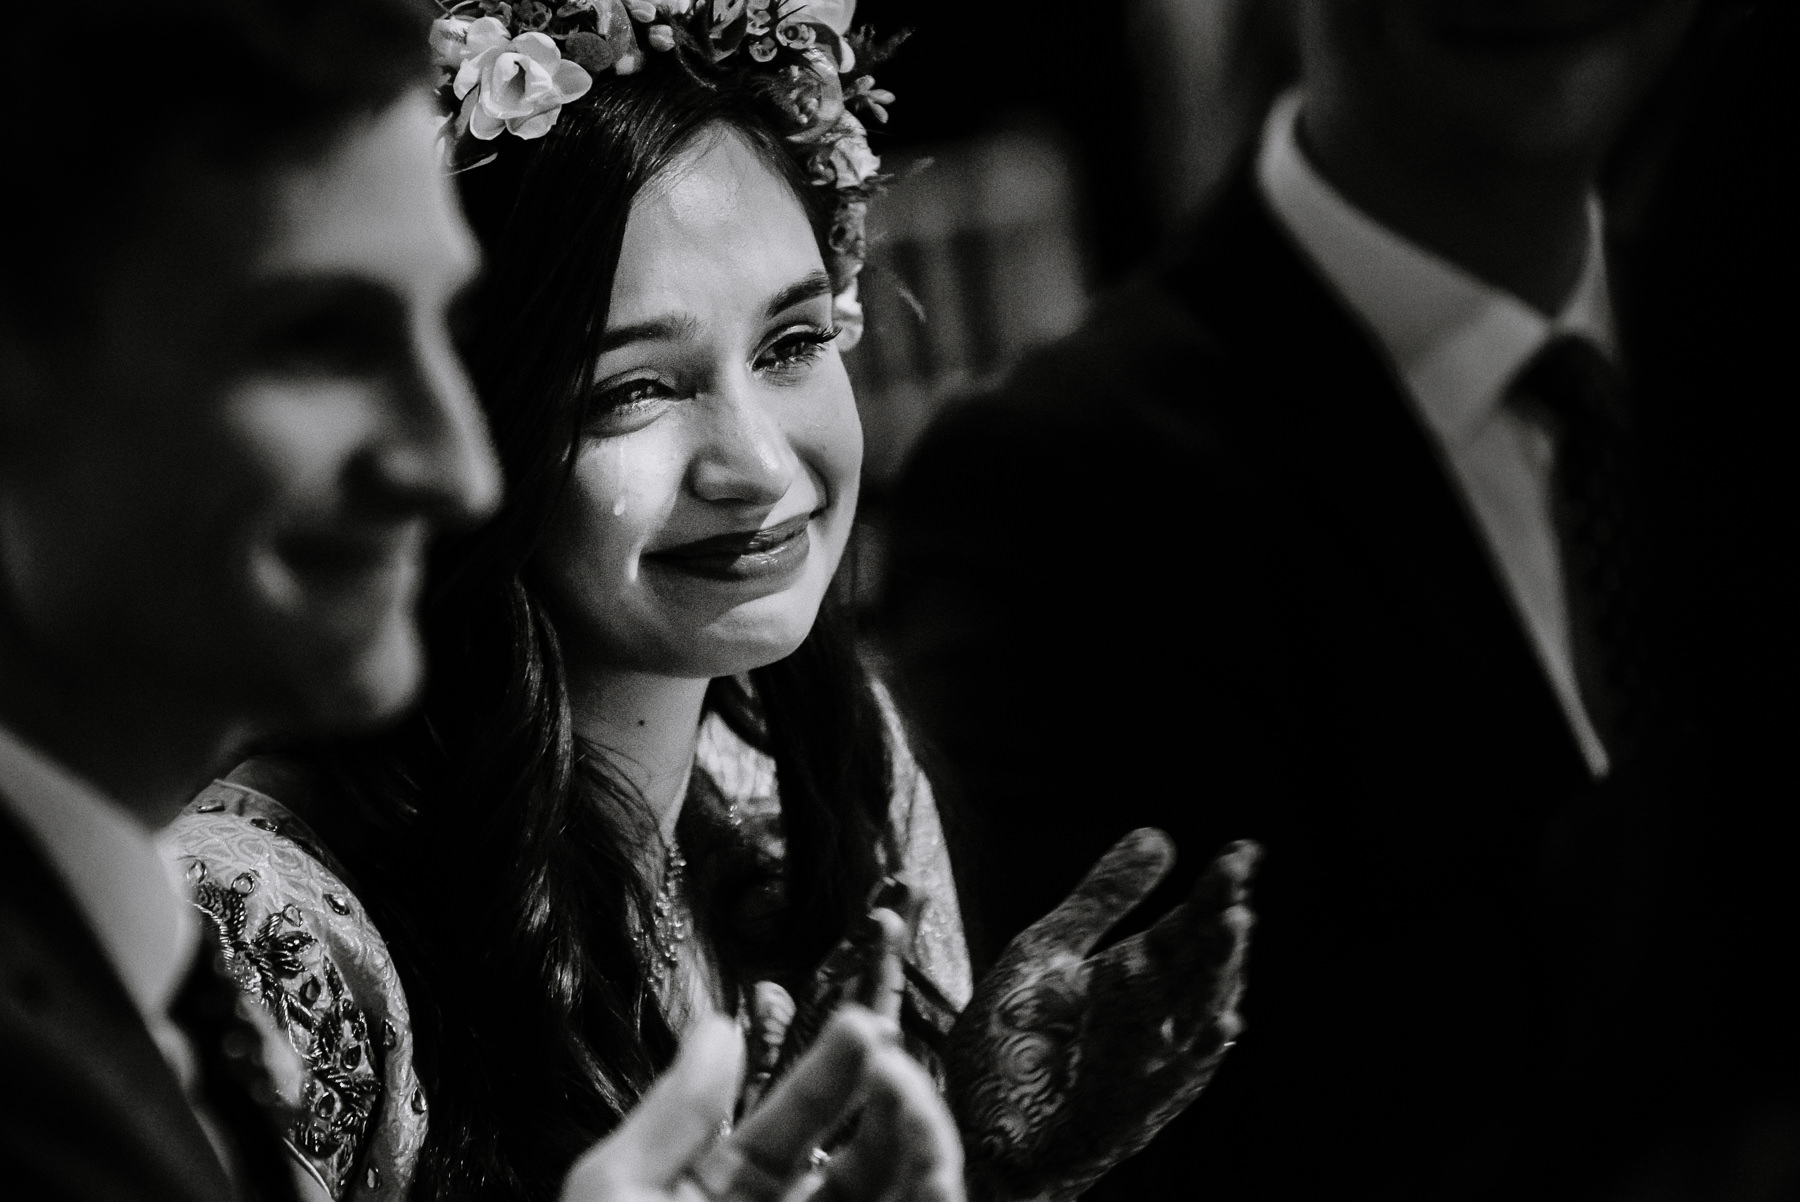 Tear rolling down the cheek of Zara during the speeches on her wedding day at Quarry bank mill.